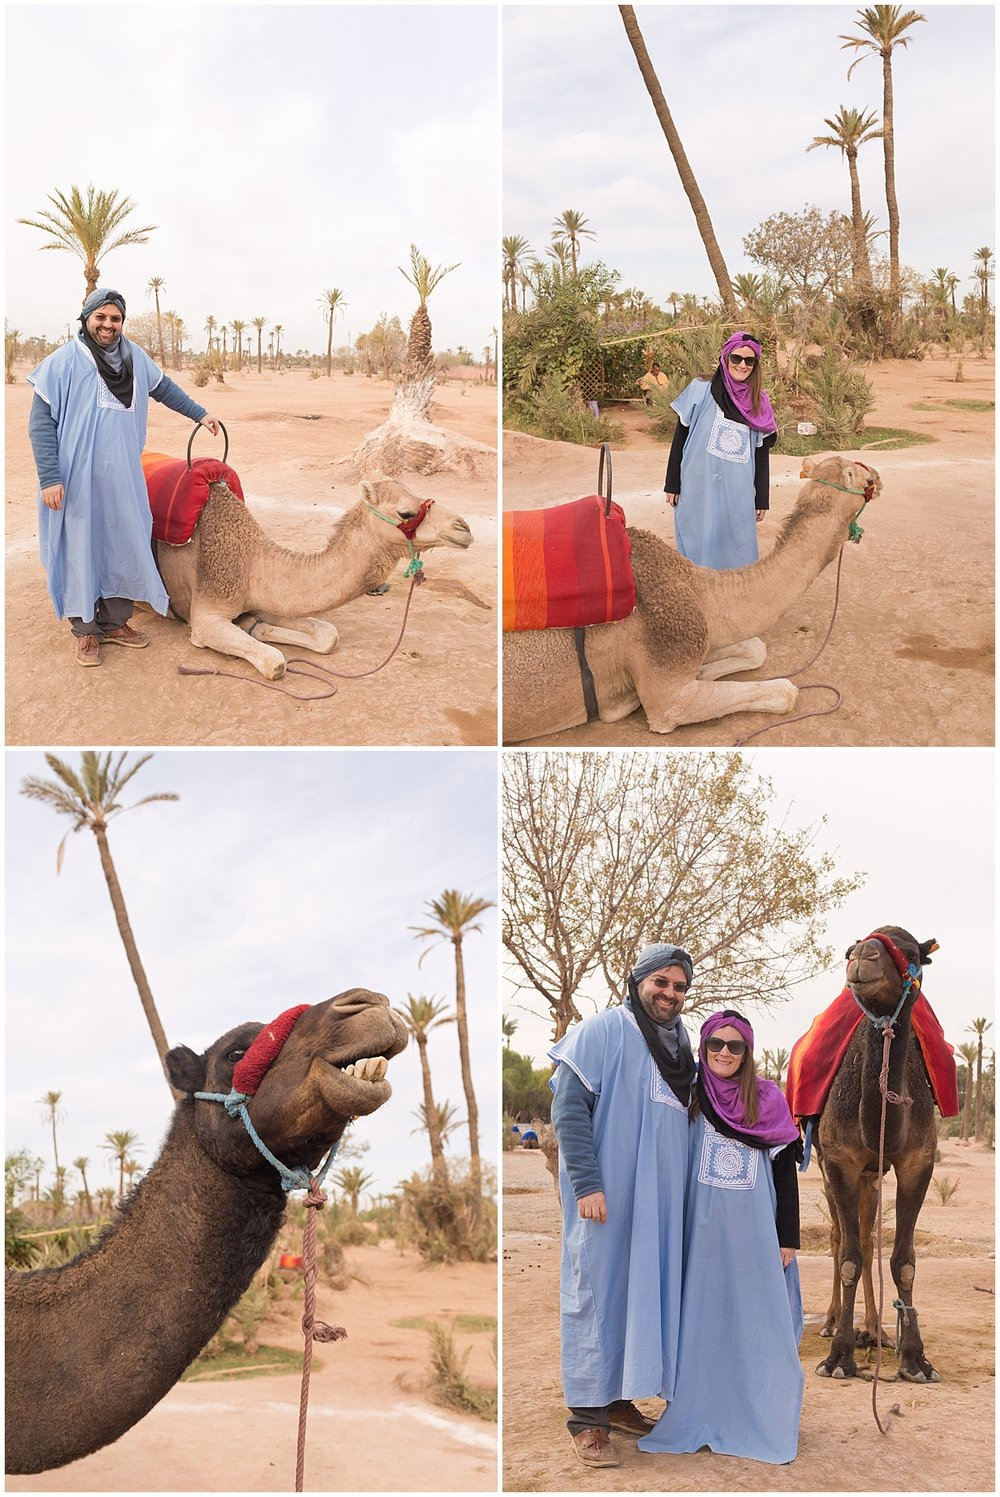 traditional attire for Moroccan camel ride - Marrakech, Morocco travel blog